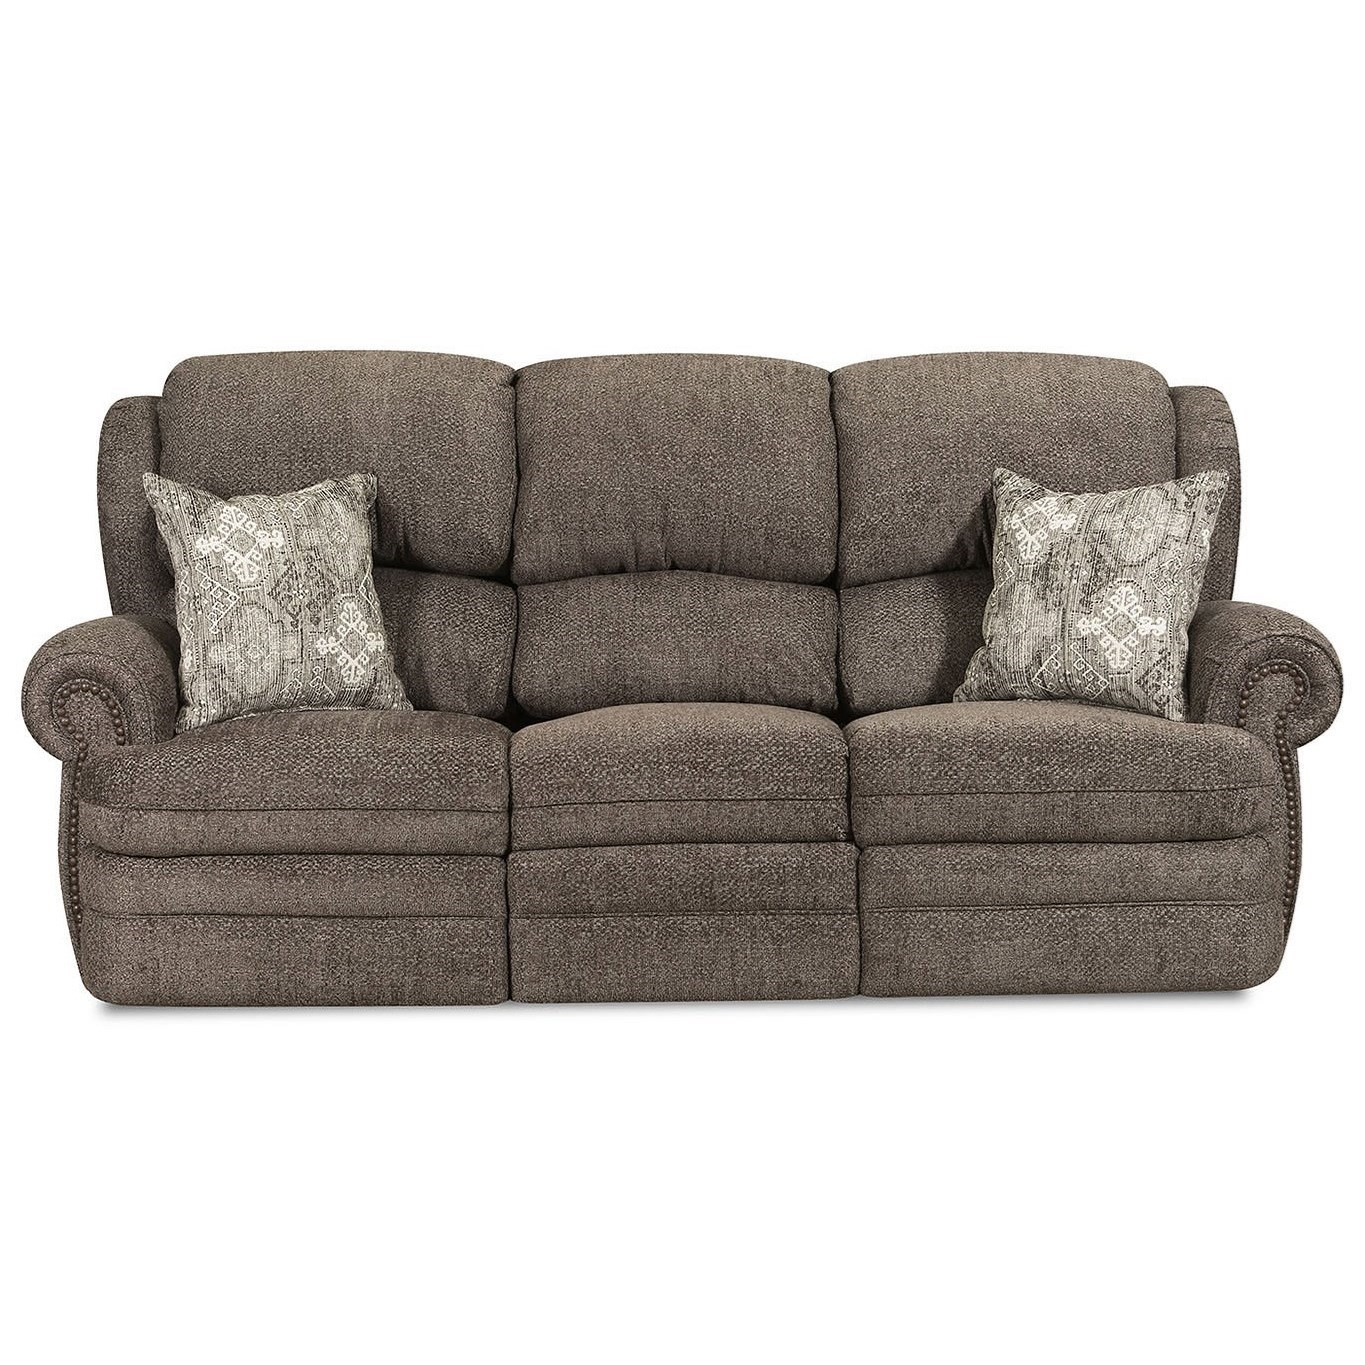 57000 Reclining Sofa by United Furniture Industries at Dream Home Interiors